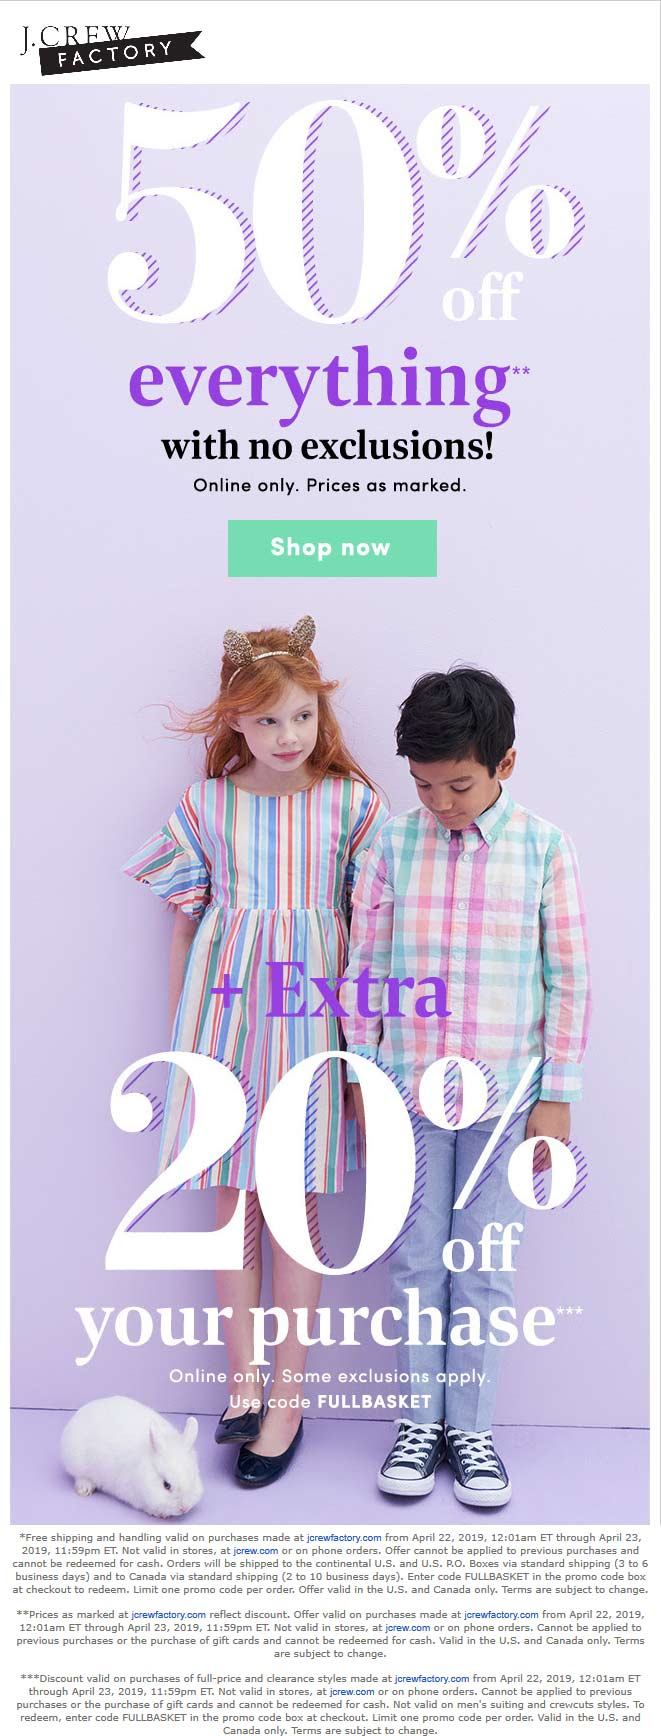 J.Crew Factory Coupon July 2019 70% off everything online at J.Crew Factory via promo code FULLBASKET